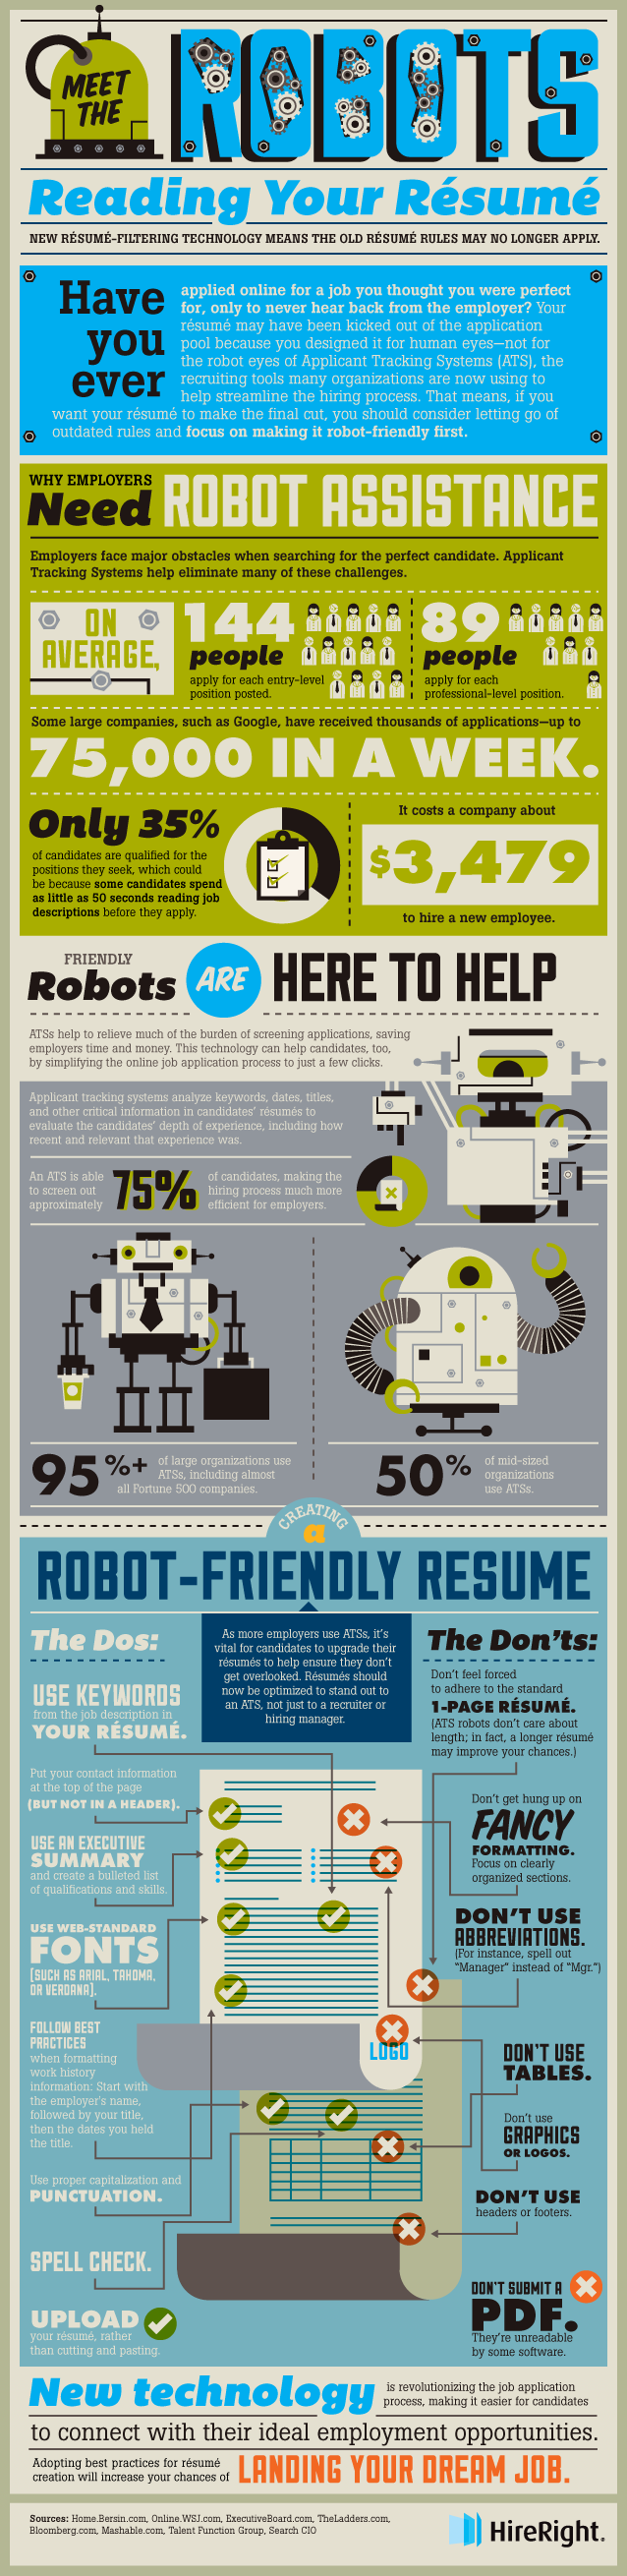 resume How Recruiters Read Resumes meet the robots reading your resume what do people think about graphic element weve seen a bit of